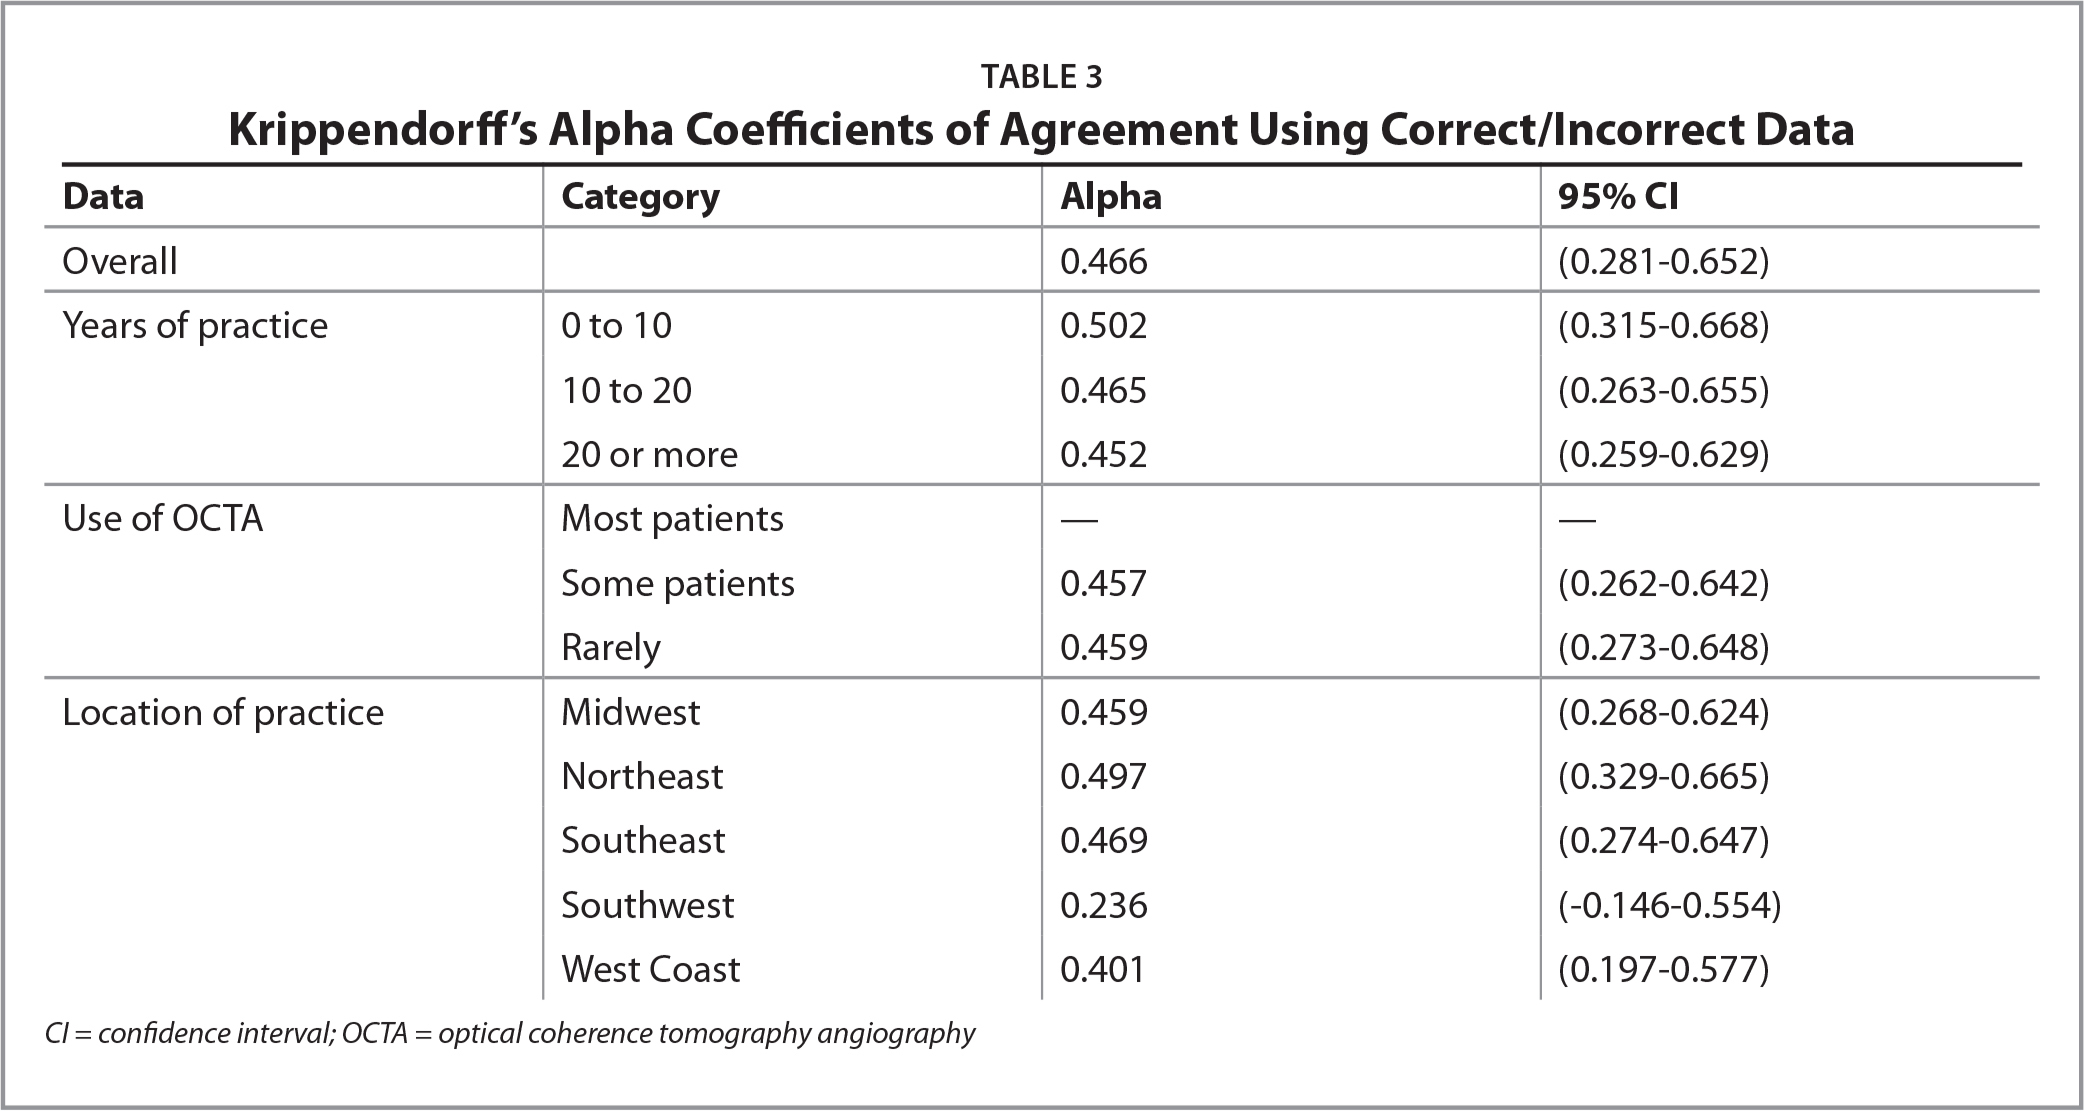 Krippendorff's Alpha Coefficients of Agreement Using Correct/Incorrect Data